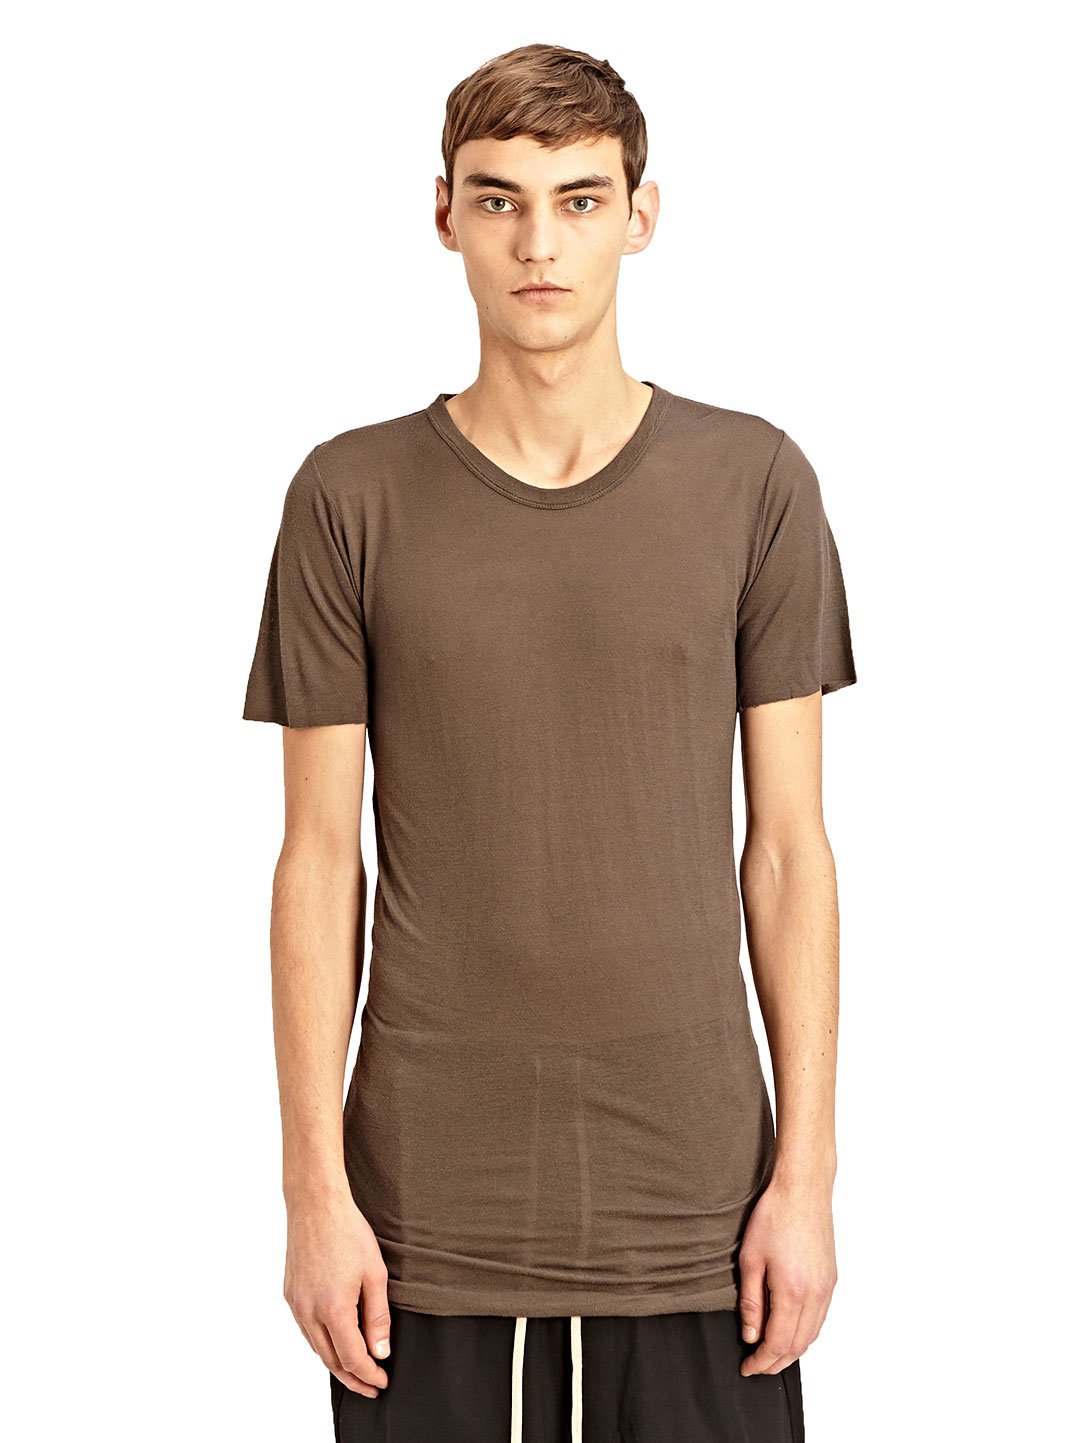 Lyst rick owens mens basic short sleeved t shirt in for Black brown mens shirts